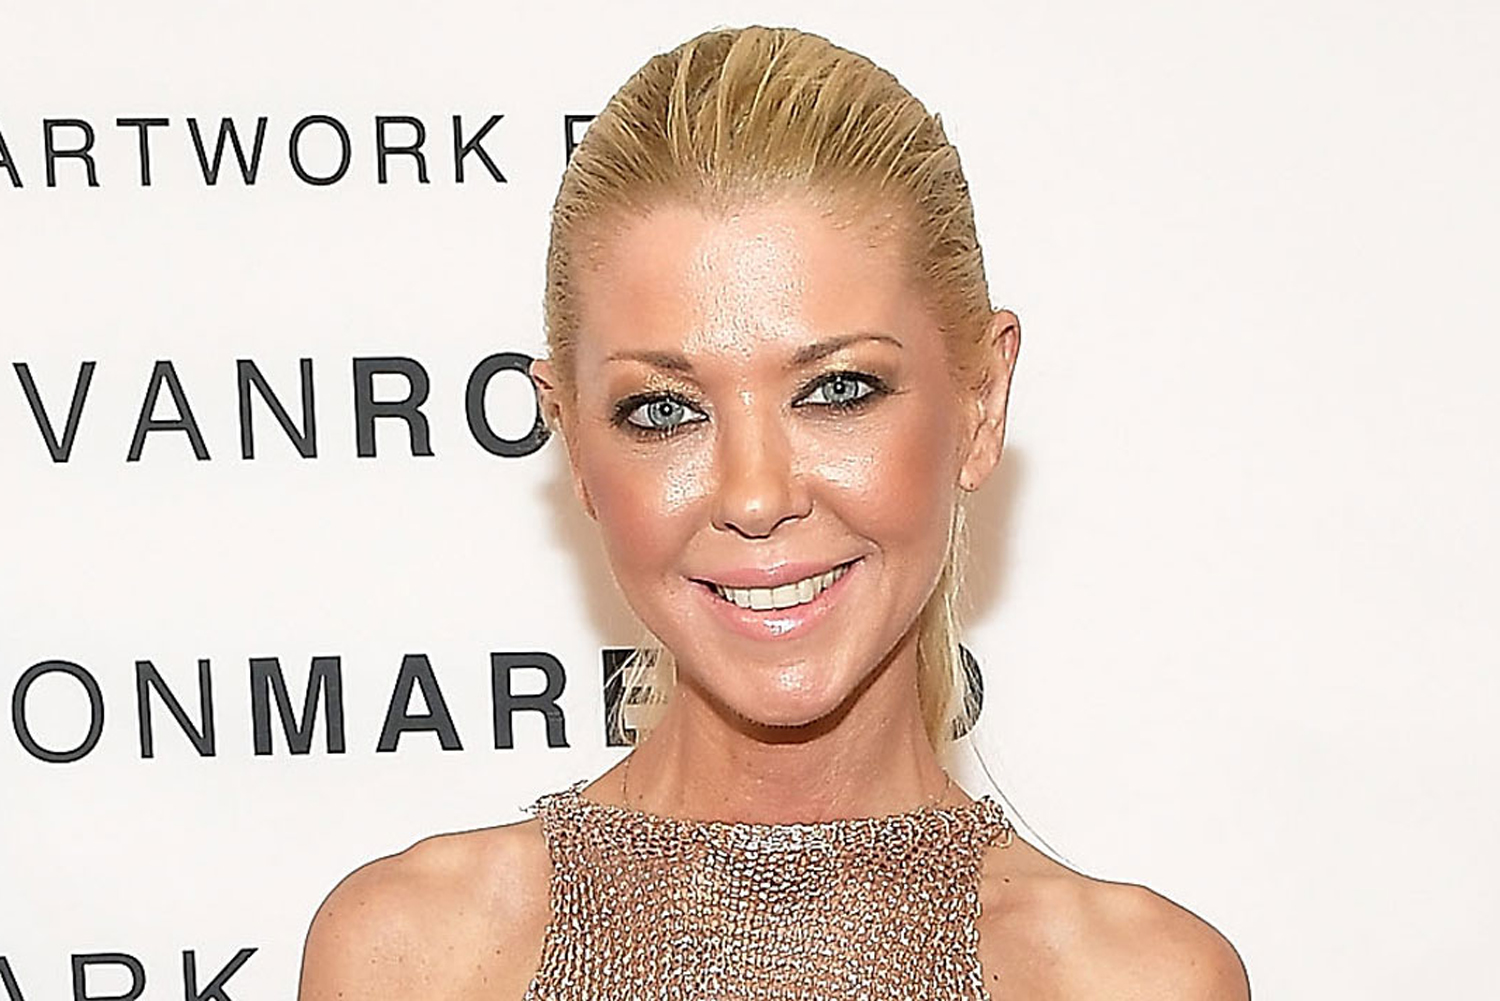 Tara Reid Sparks Alarm After Being Spotted In Mexico With Ever Skinnier Frame New Idea Magazine